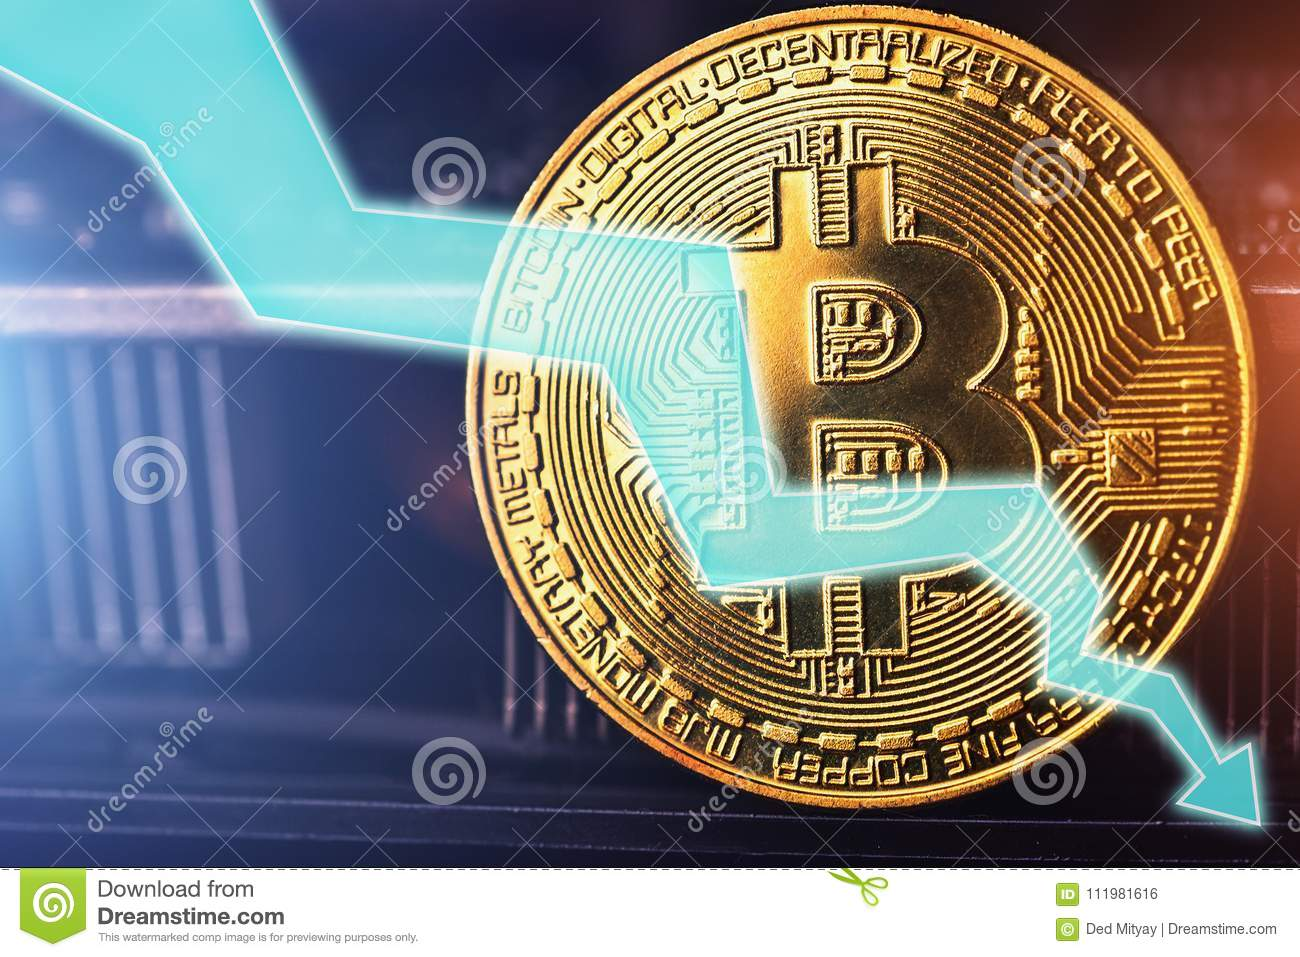 Bitcoin fall down golden bitcoin coin symbol of crypto currency royalty free stock photo biocorpaavc Choice Image